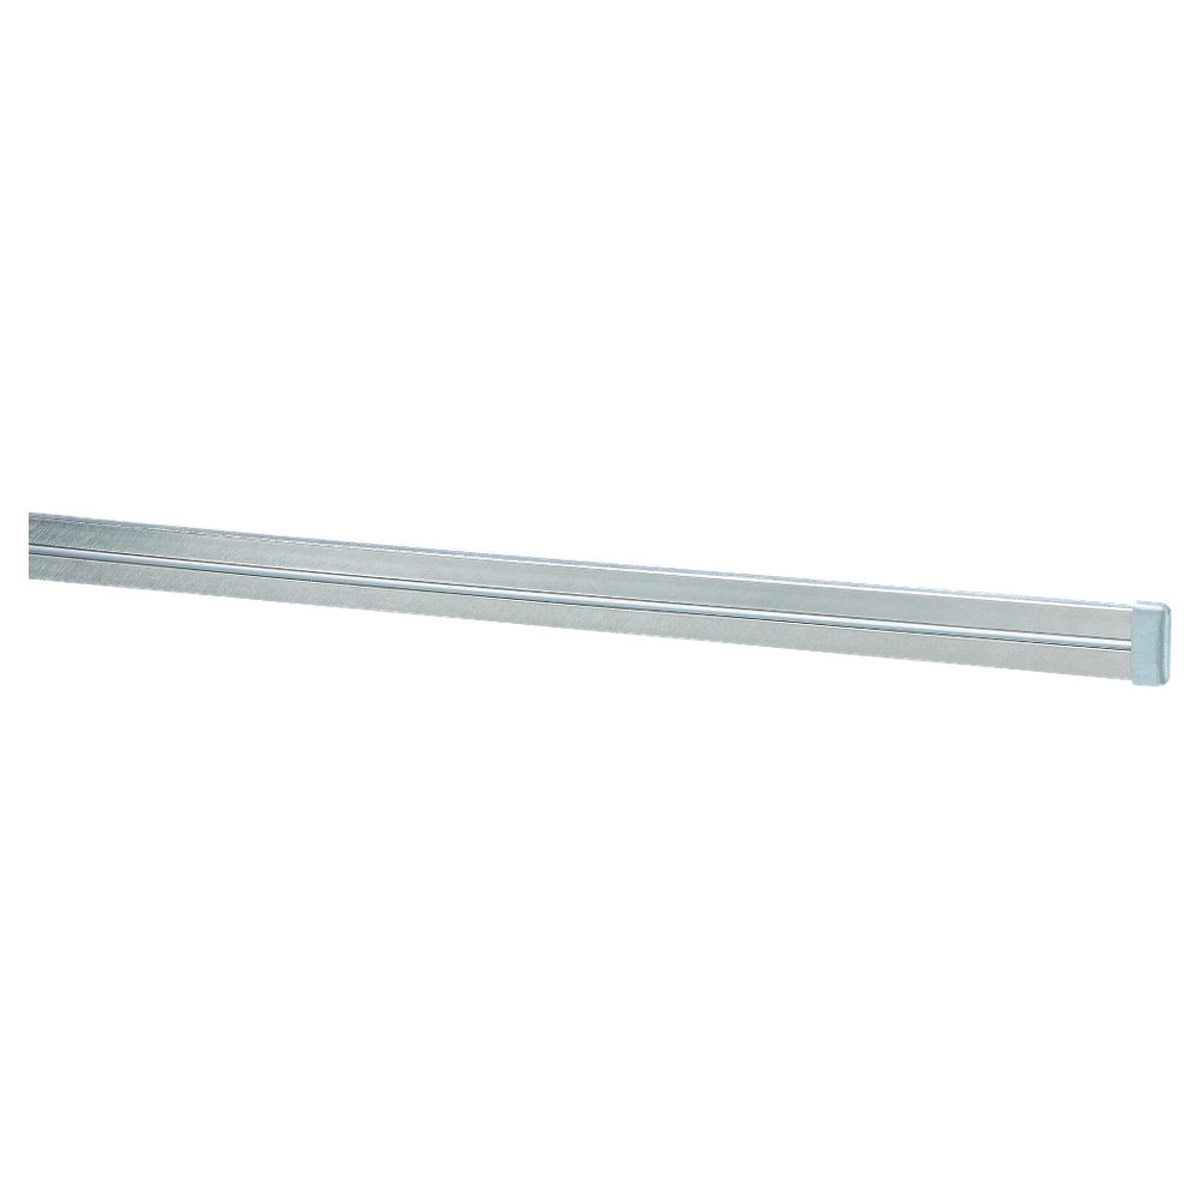 Sea Gull Lighting RTx Four Foot Rail in Brushed Stainless 95300-98 photo